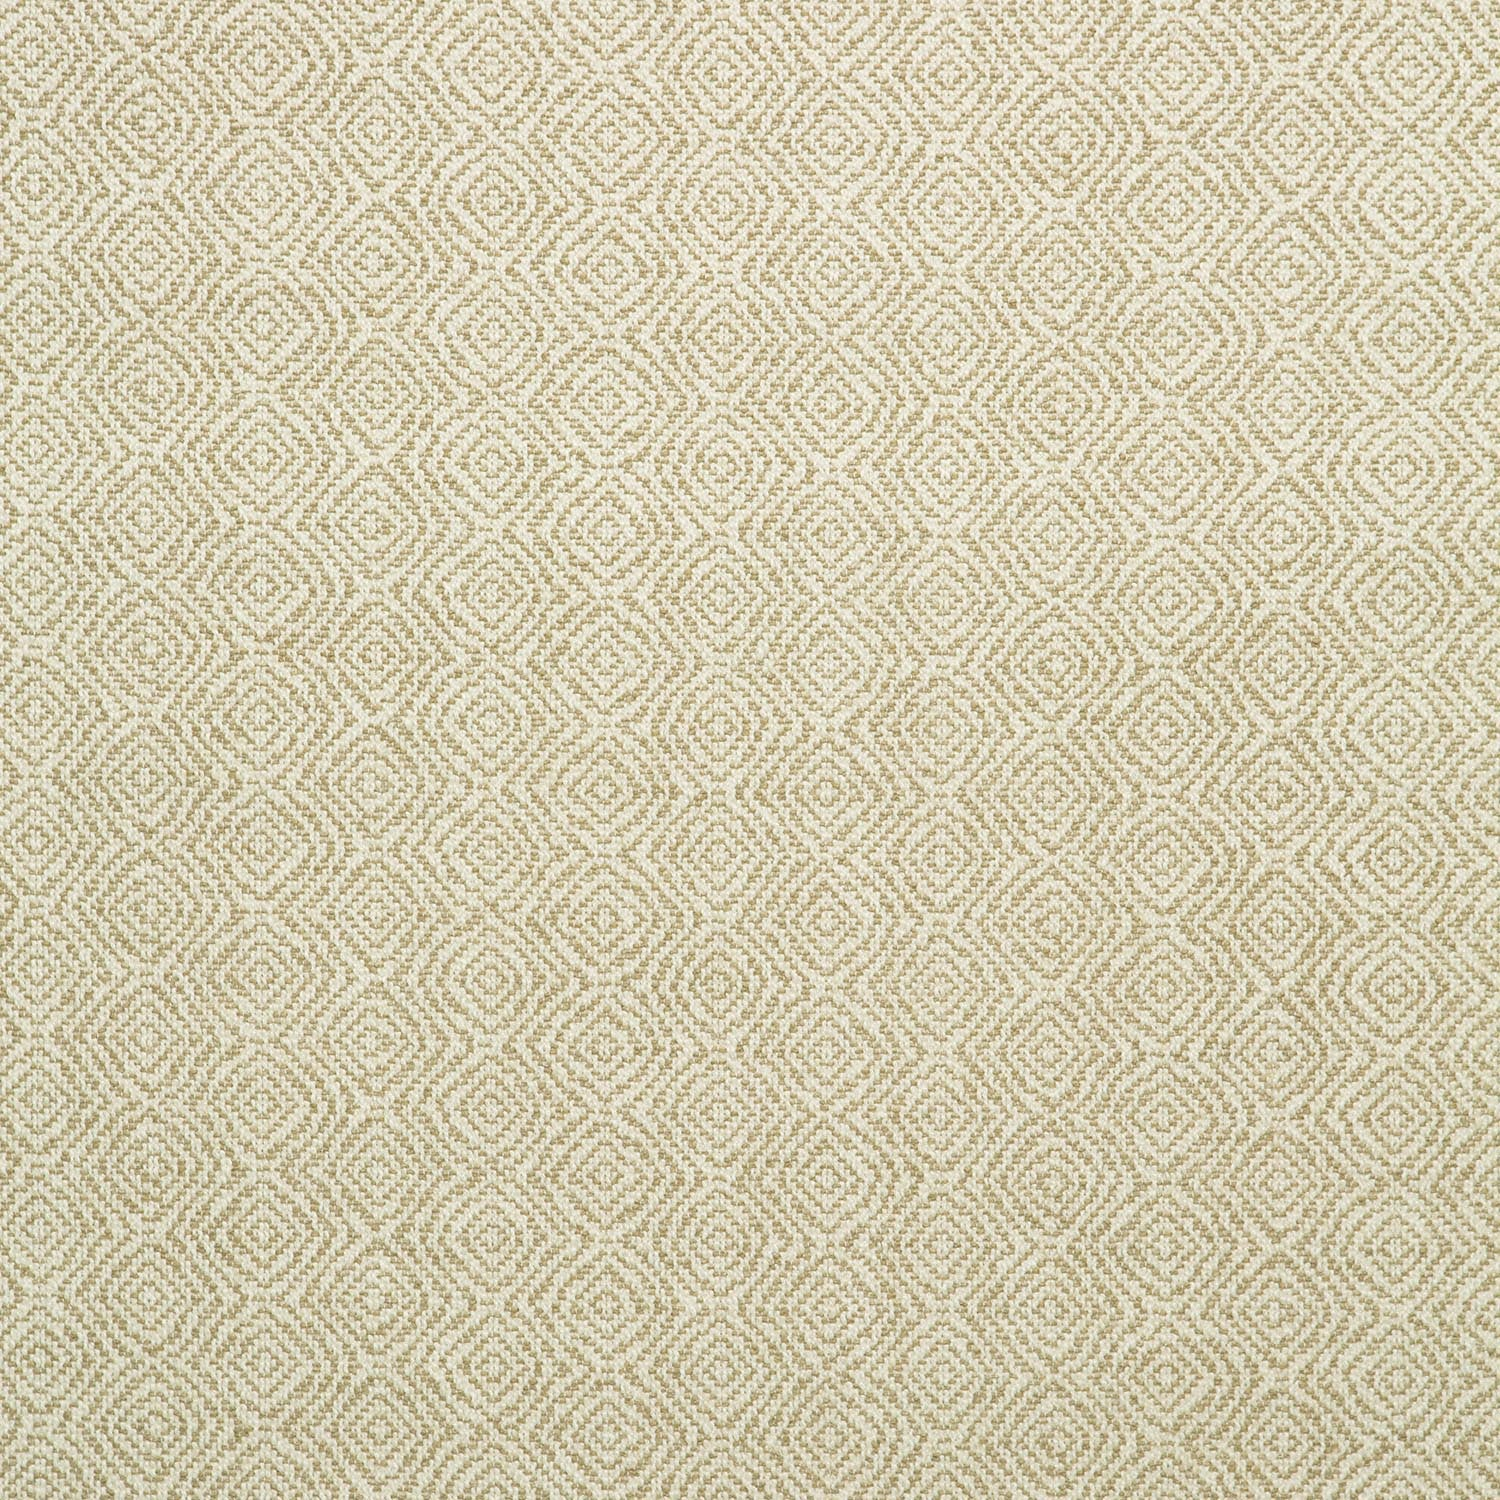 Fabric swatch of a beige and white geometric weave fabric for upholstery